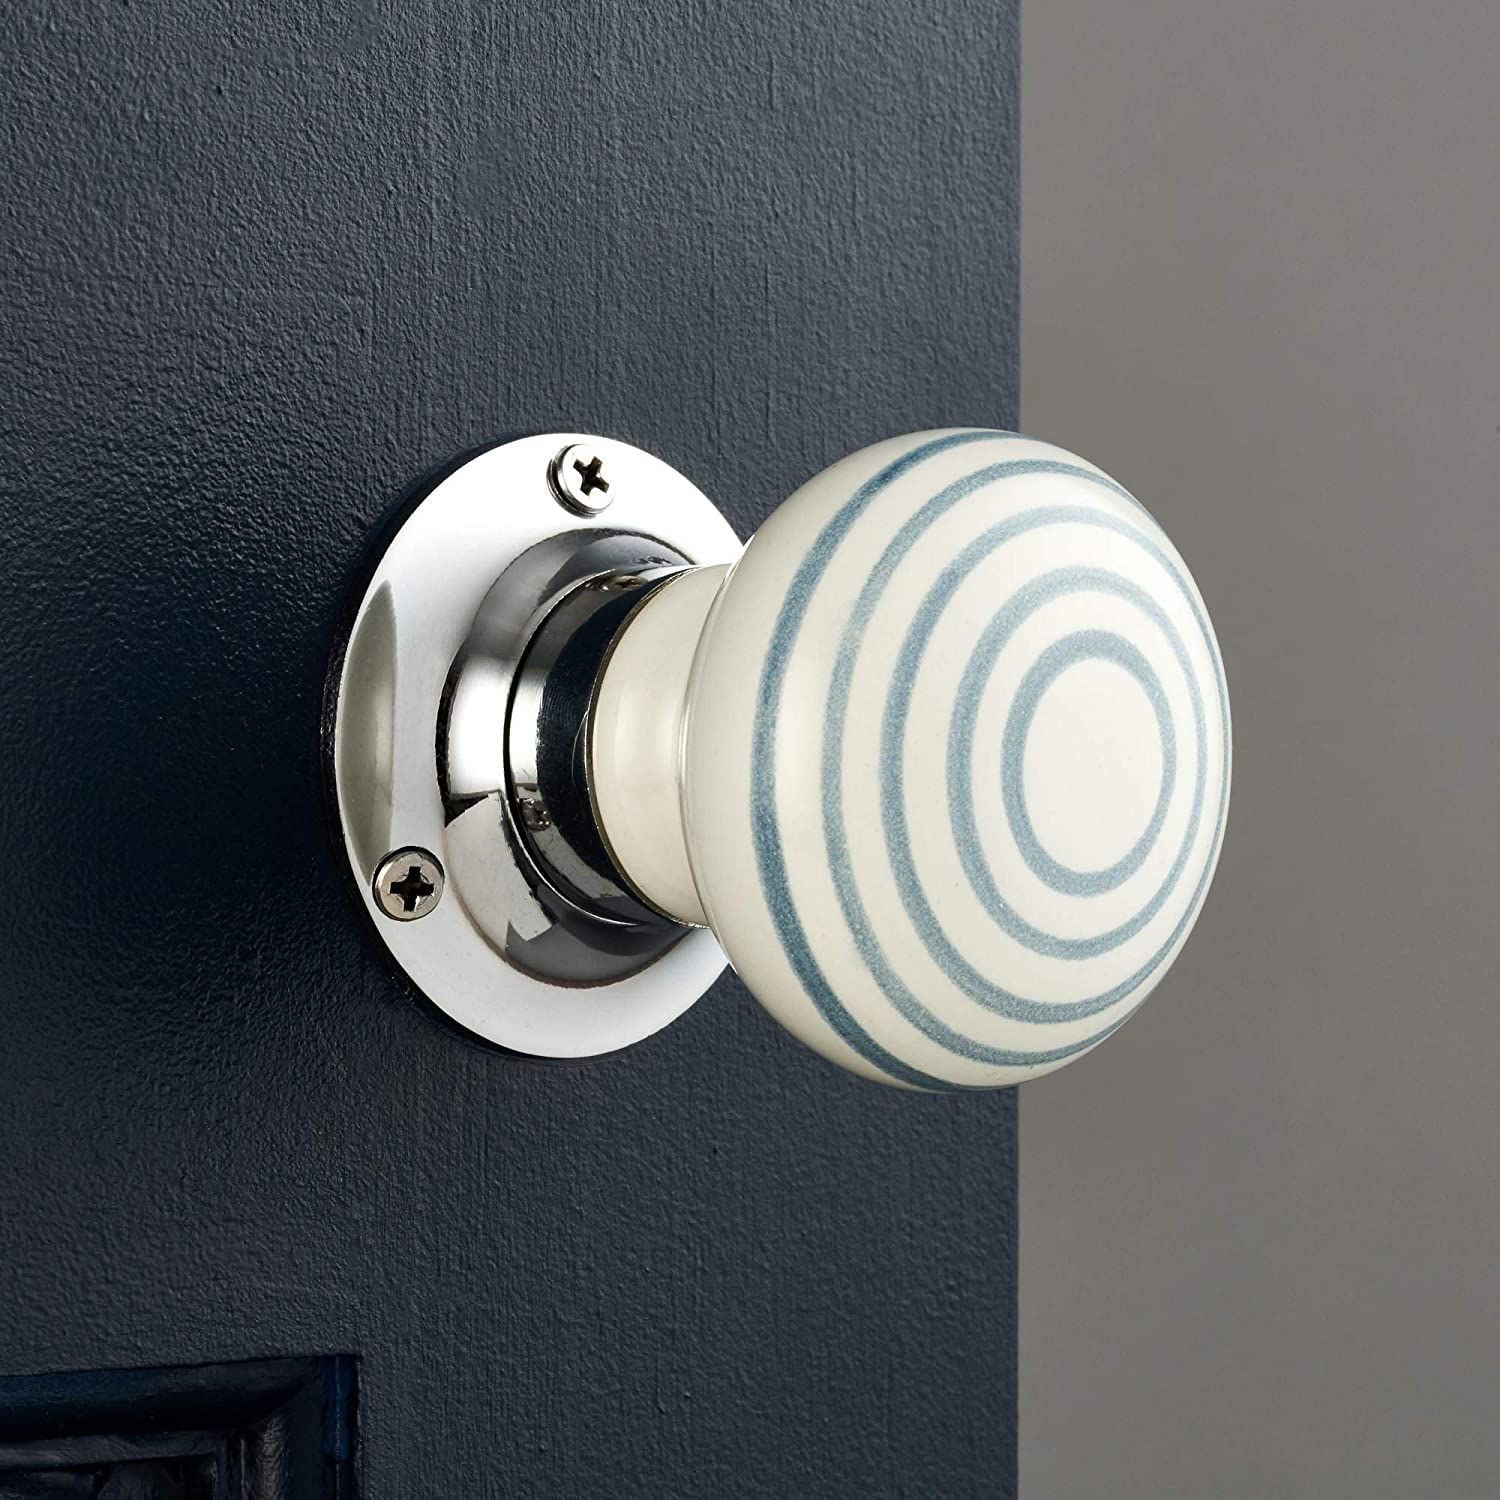 Turning door handles for internal doors Pushka Home Pair of Ceramic grey striped white internal spring-loaded mortice door knobs Supplied with spindle bar and screws. In a fun design with grey candy stripes on white and chrome base